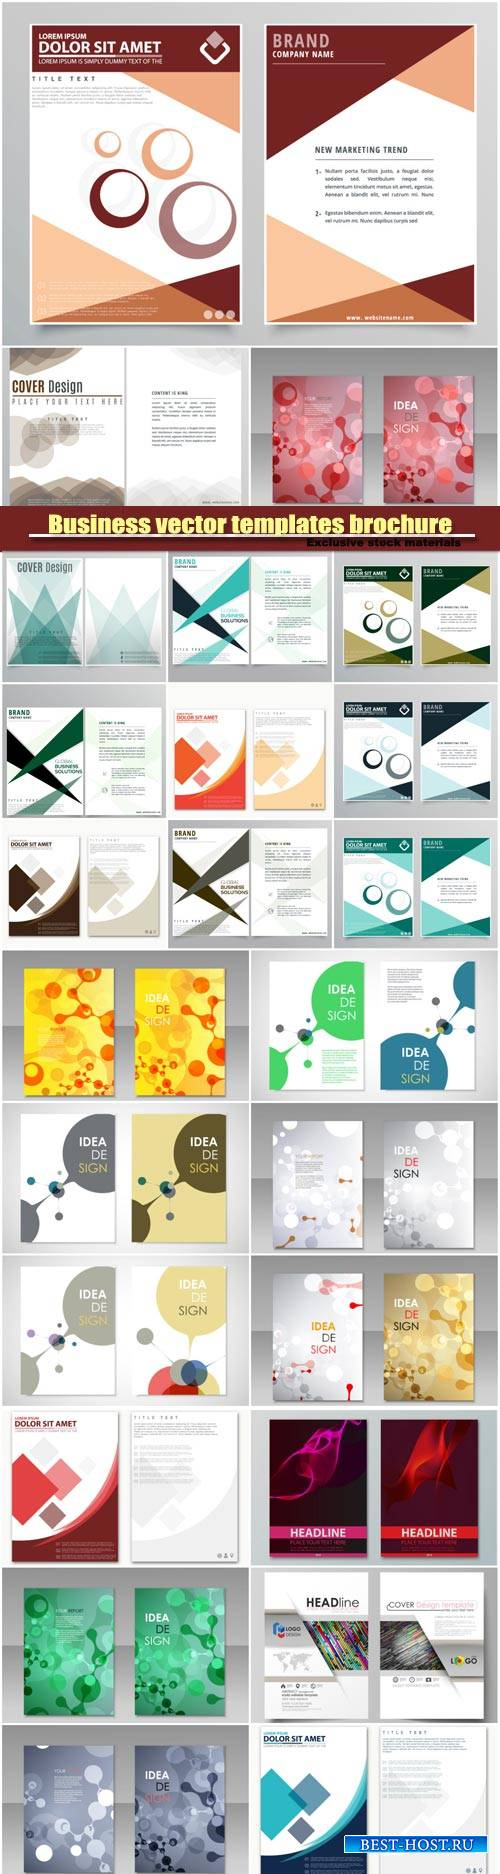 Abstract vector flyer templates brochure, colored cover image texture